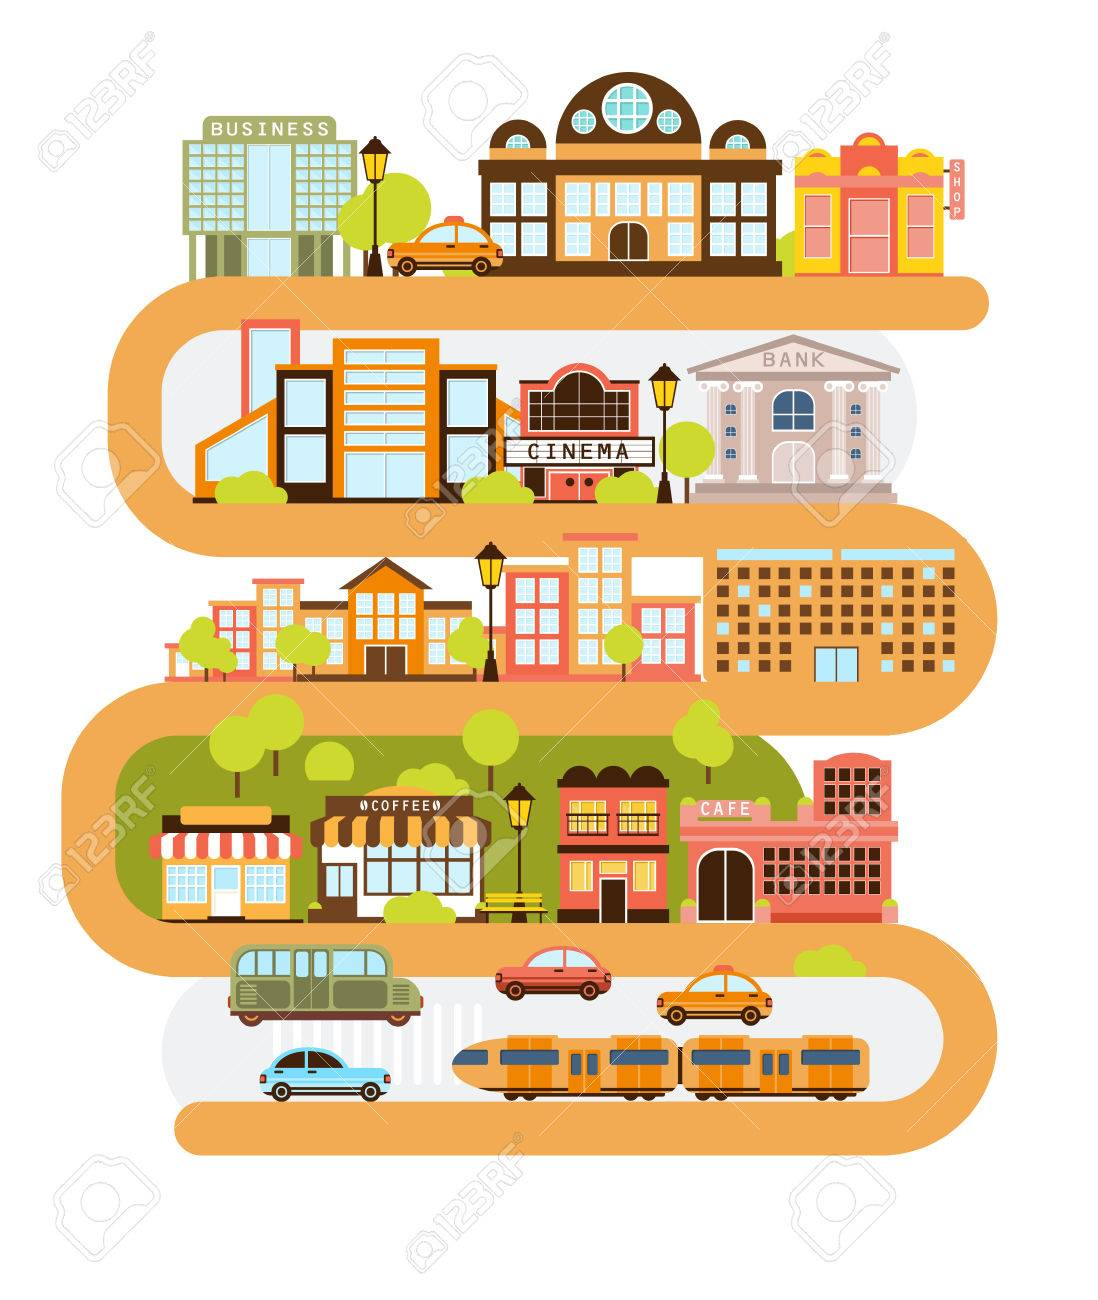 City Infrastructure And All The Urban Buildings Lined With The Curved Orange Line In Graphic Illustration. Modern Town Architecture and Common Services Separated In Blocks One On Top Of Another. Standard-Bild - 65541802